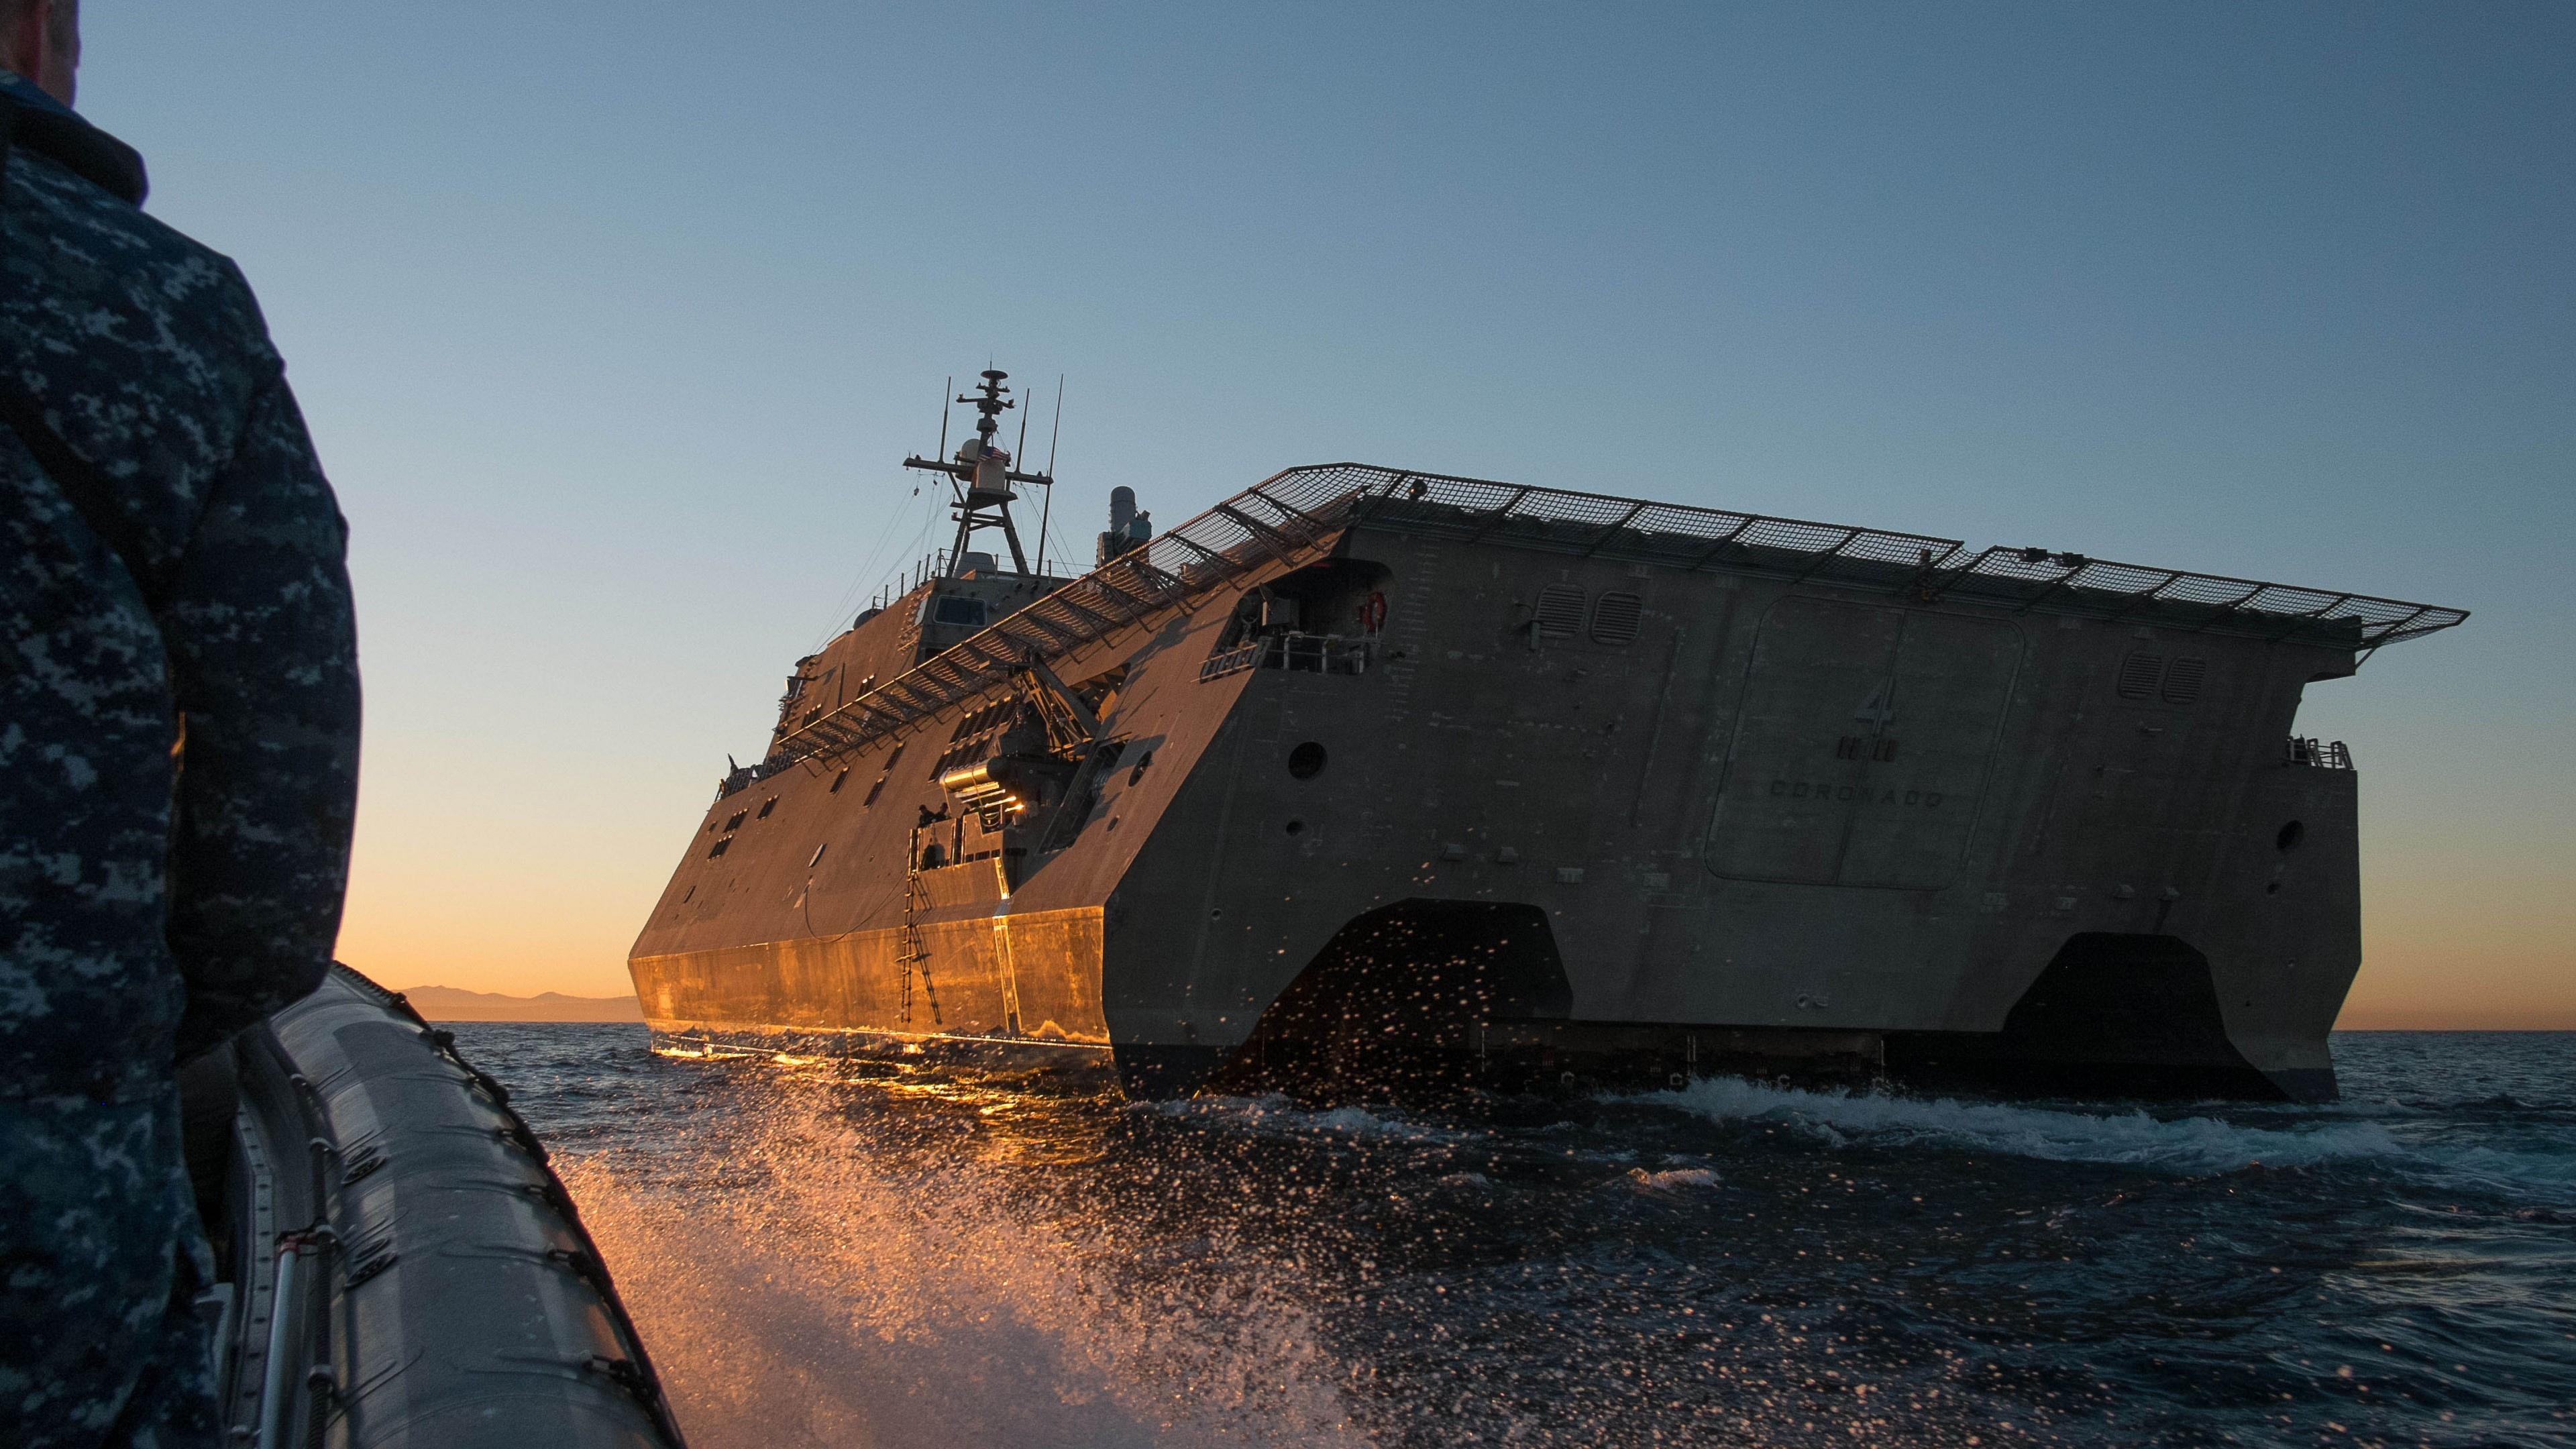 Cool Cars Wallpaper With Girls Wallpaper Uss Coronado Lcs 4 Independence Class